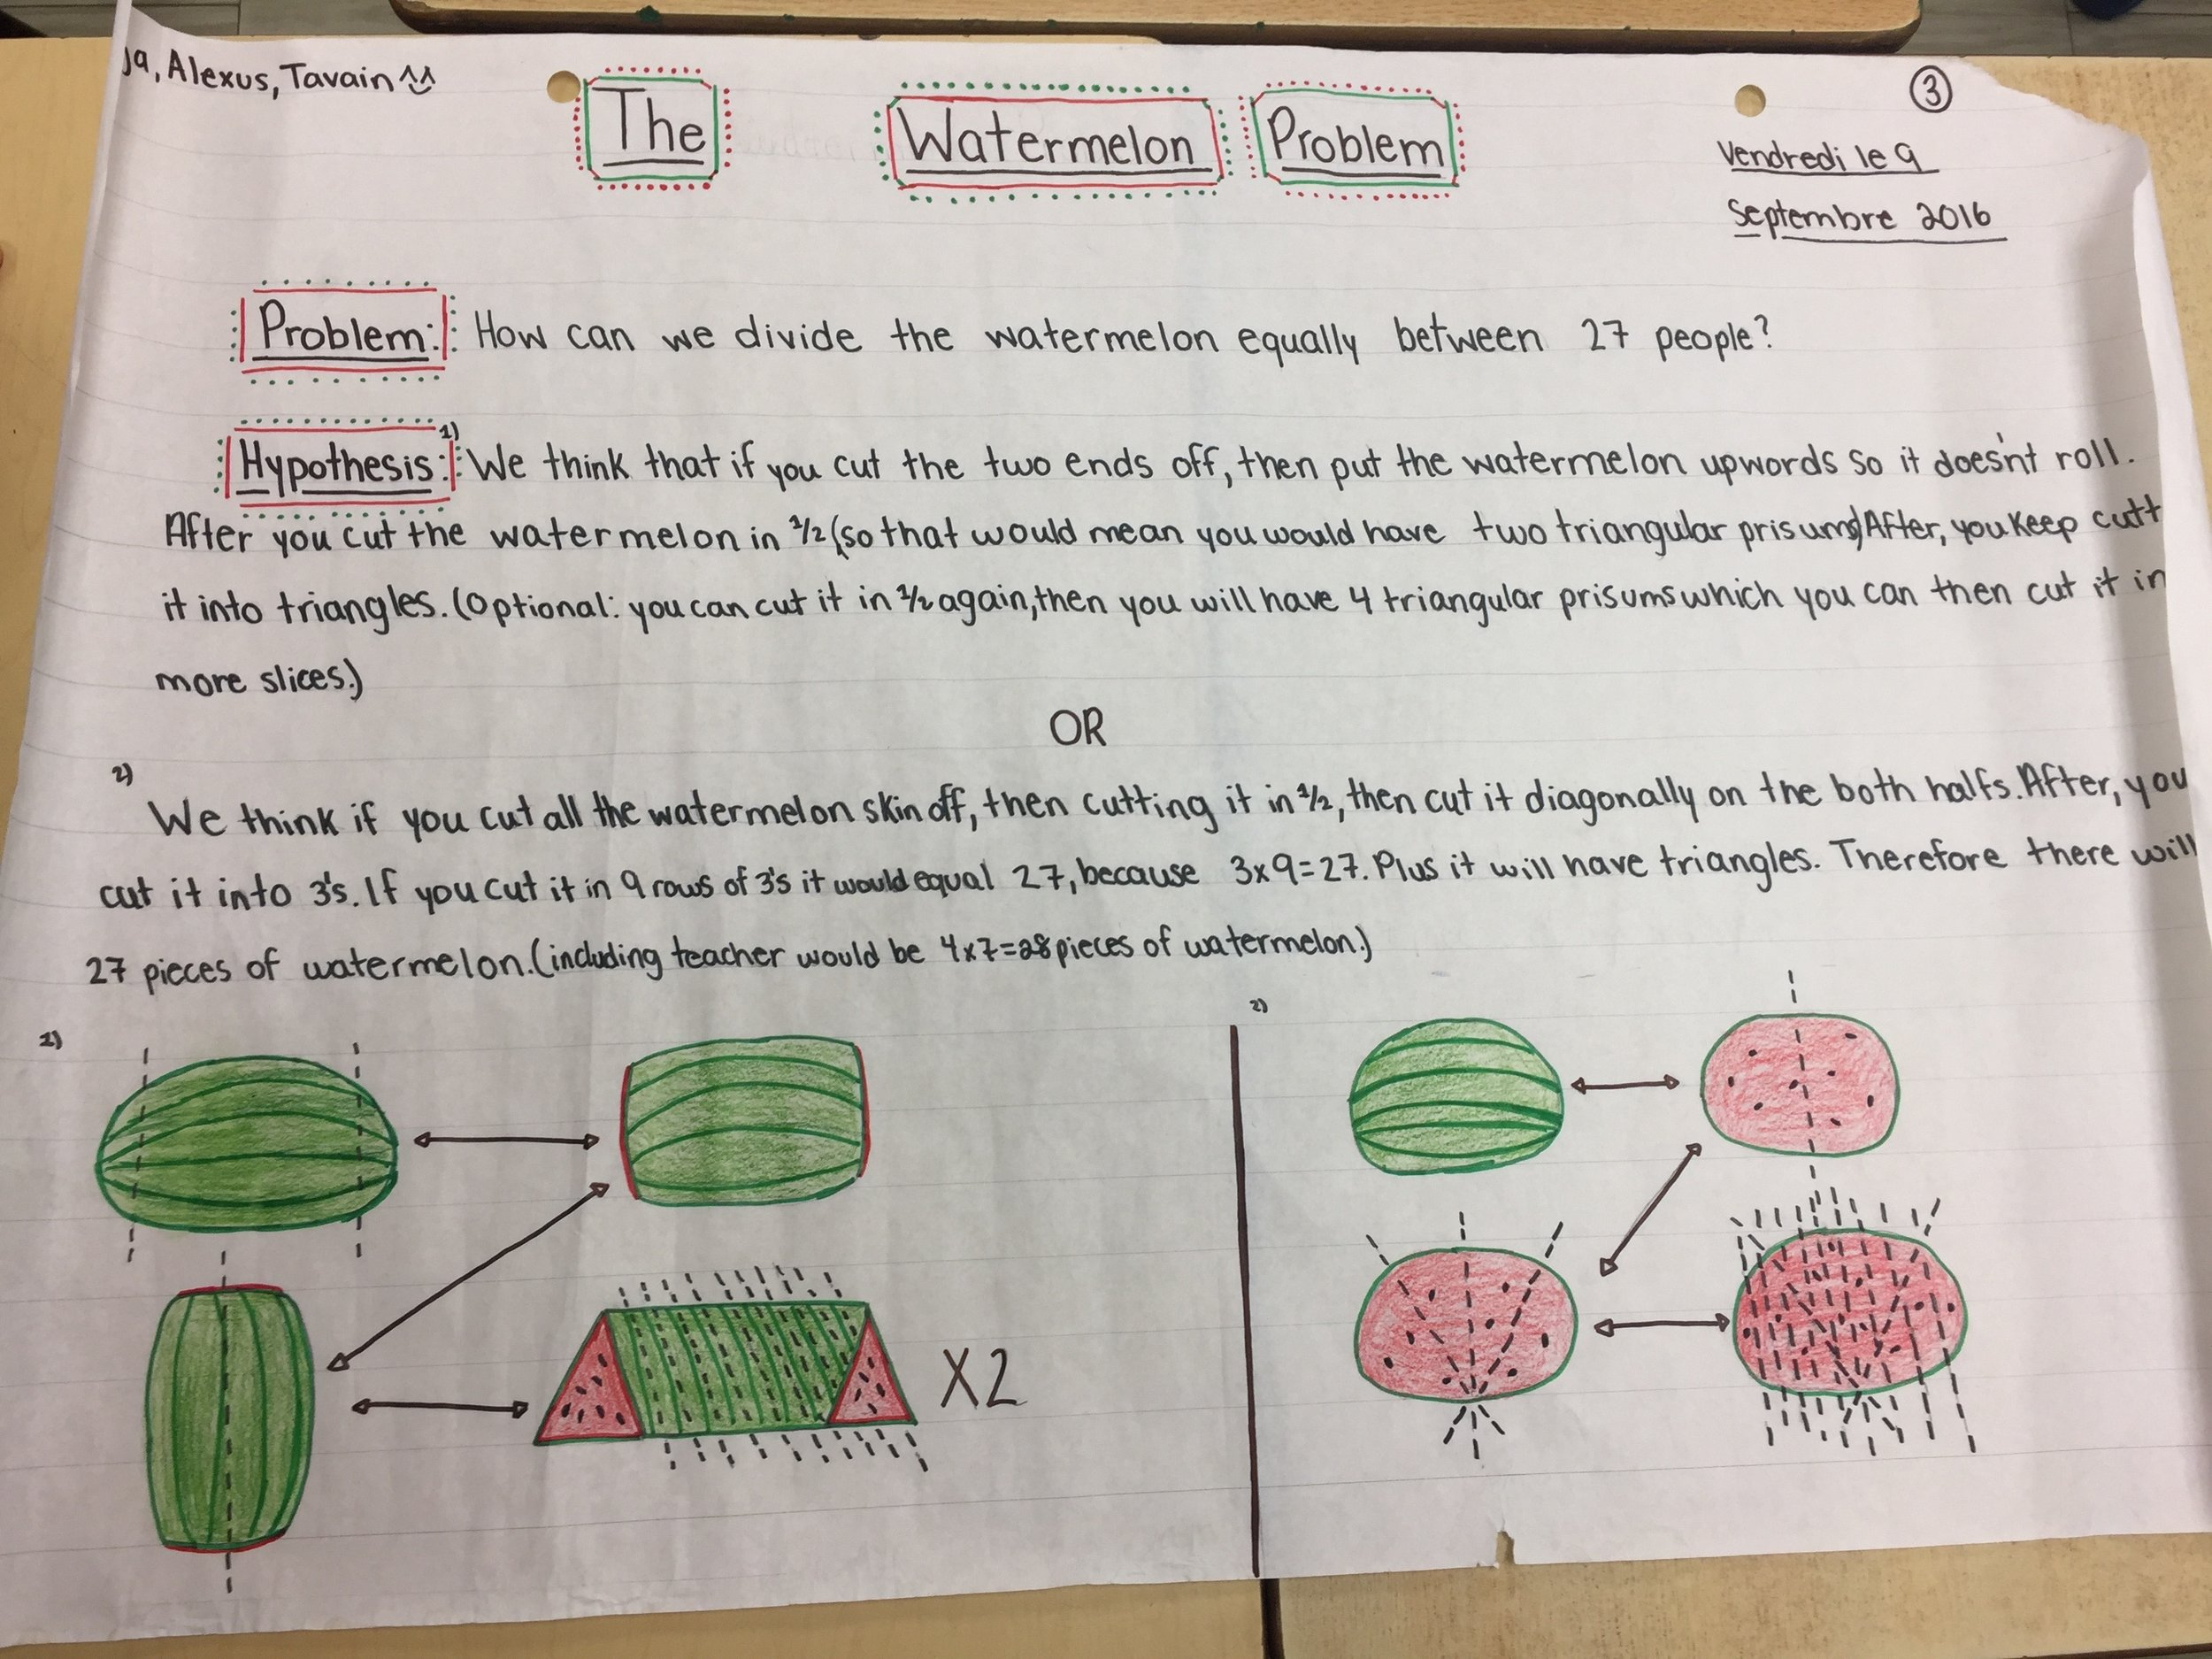 2016-09-14-the-watermelon-problem-student-solutions-8.jpg